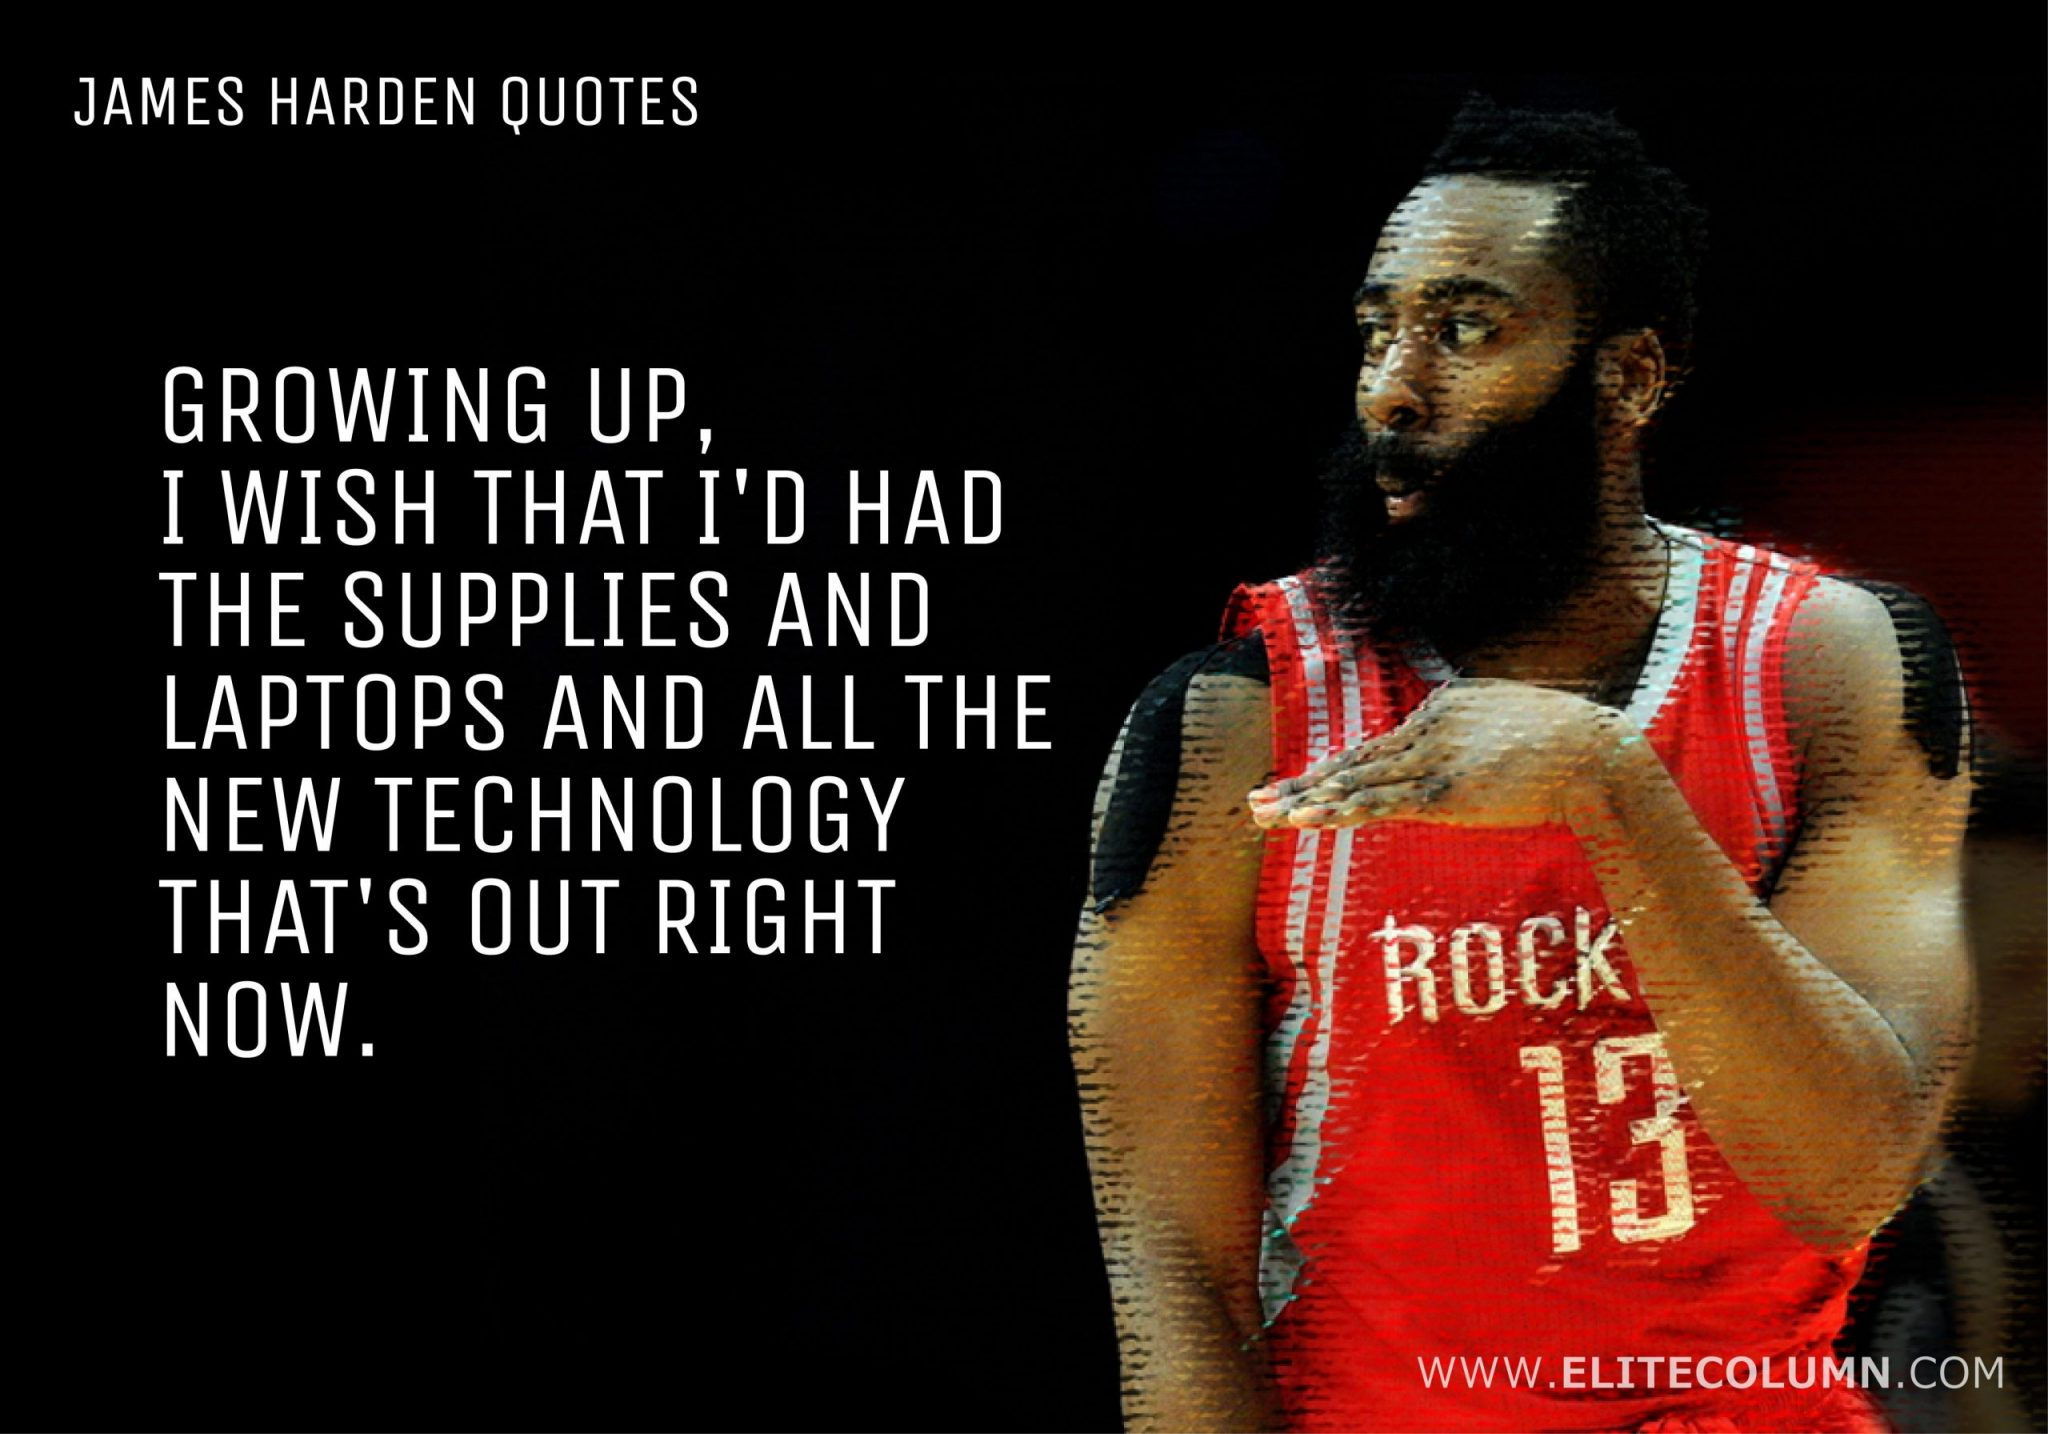 James Harden Quotes (3)